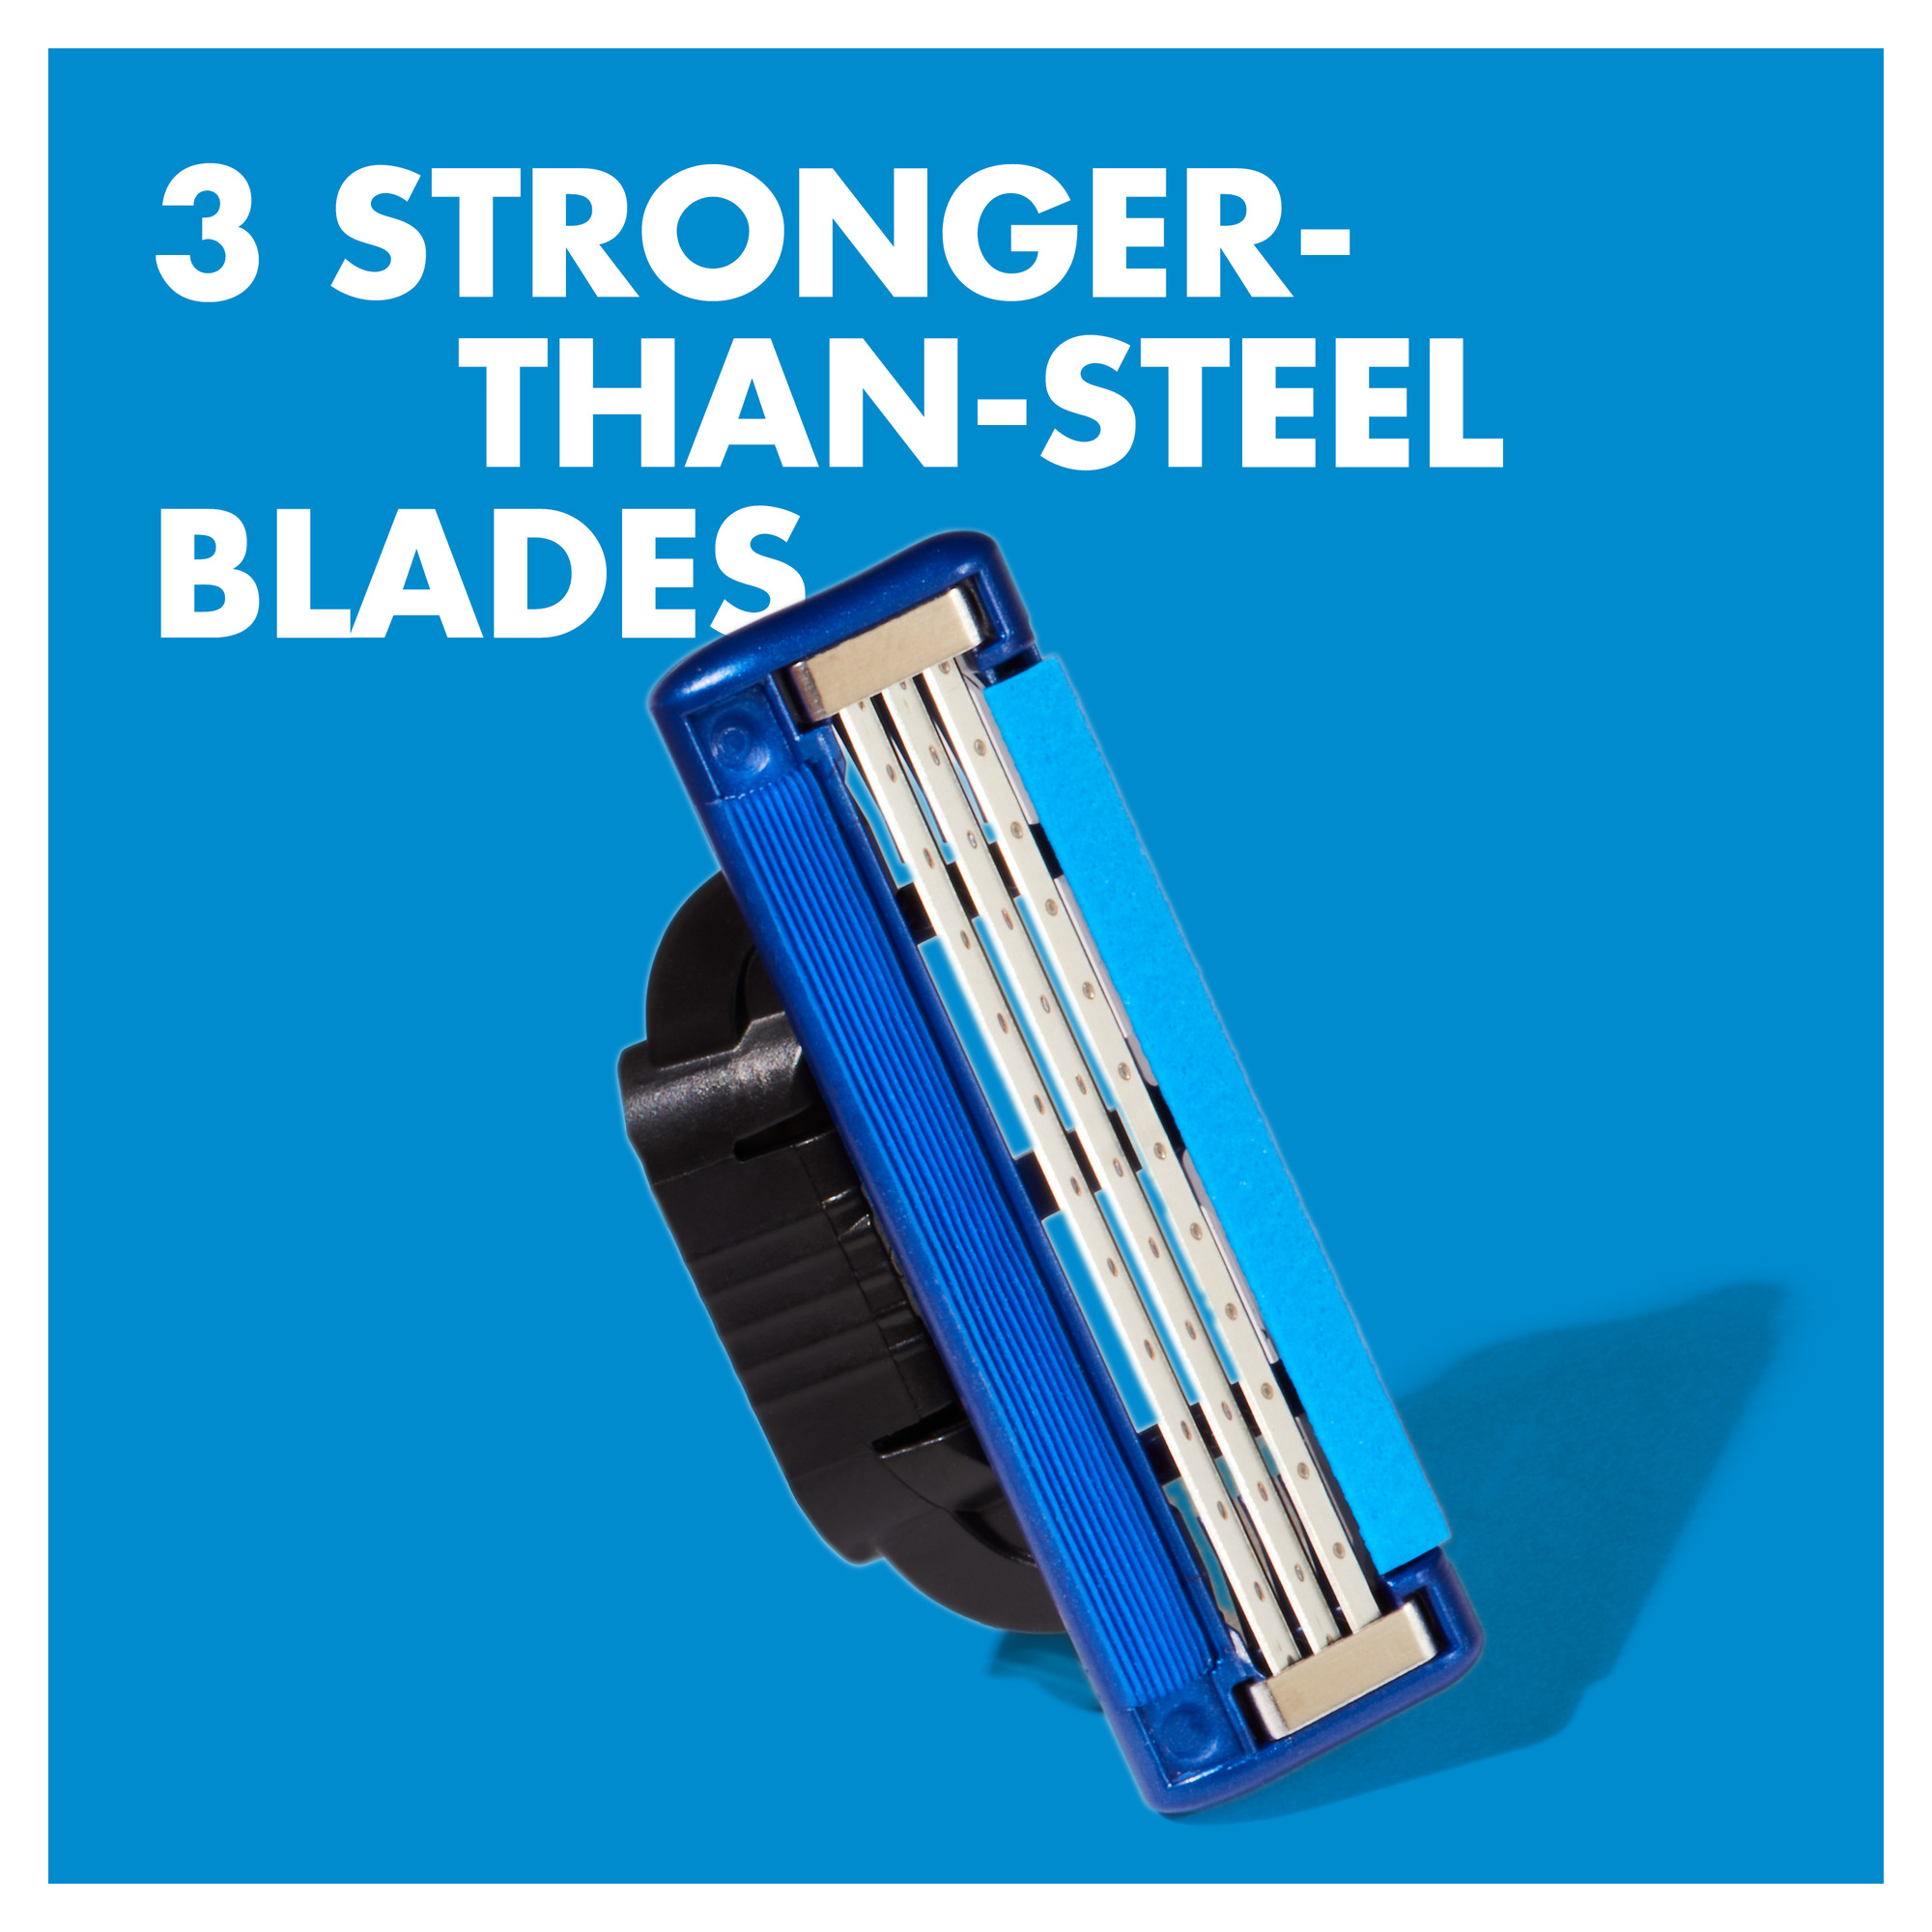 3 stronger than steel blades